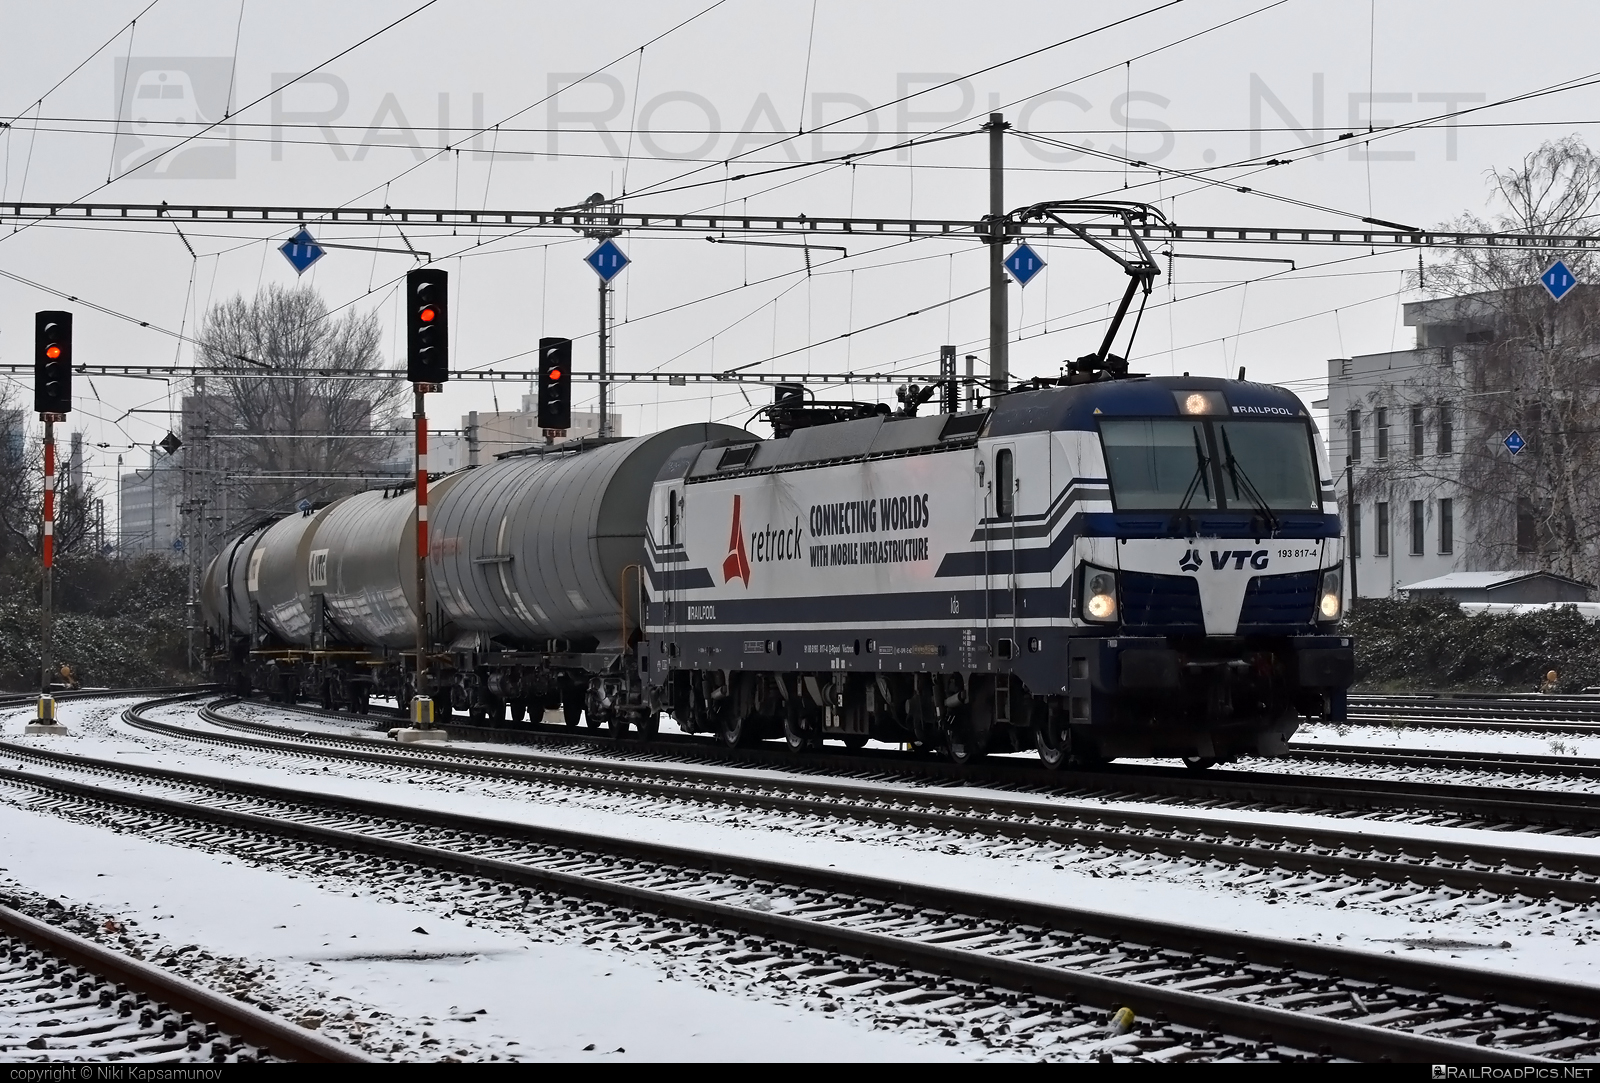 Siemens Vectron AC - 193 817-4 operated by Retrack Slovakia s. r. o. #kesselwagen #railpool #railpoolgmbh #retrack #retrackslovakia #siemens #siemensvectron #siemensvectronac #tankwagon #vectron #vectronac #vtg